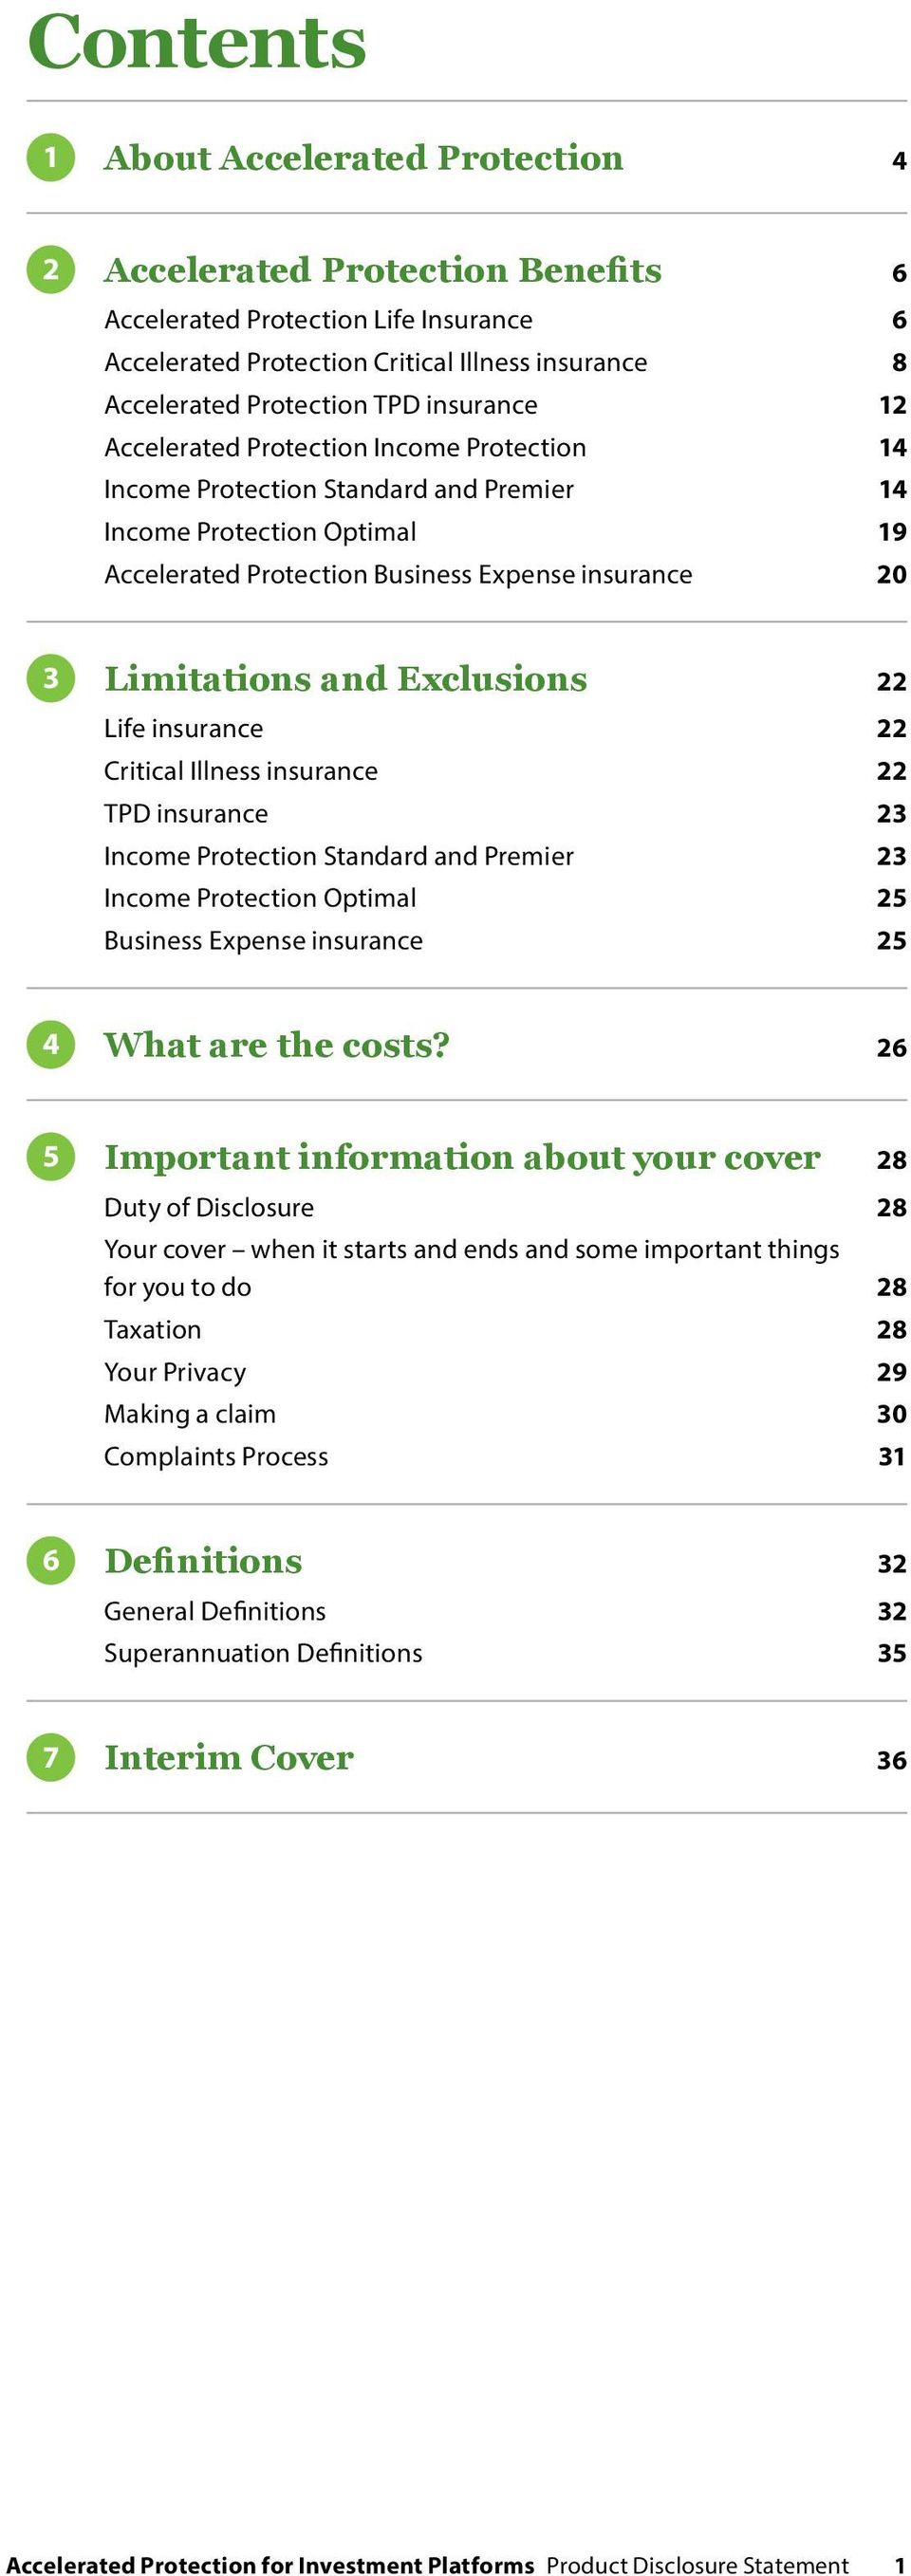 22 Life insurance 22 Critical Illness insurance 22 TPD insurance 23 Income Protection Standard and Premier 23 Income Protection Optimal 25 Business Expense insurance 25 4 What are the costs?